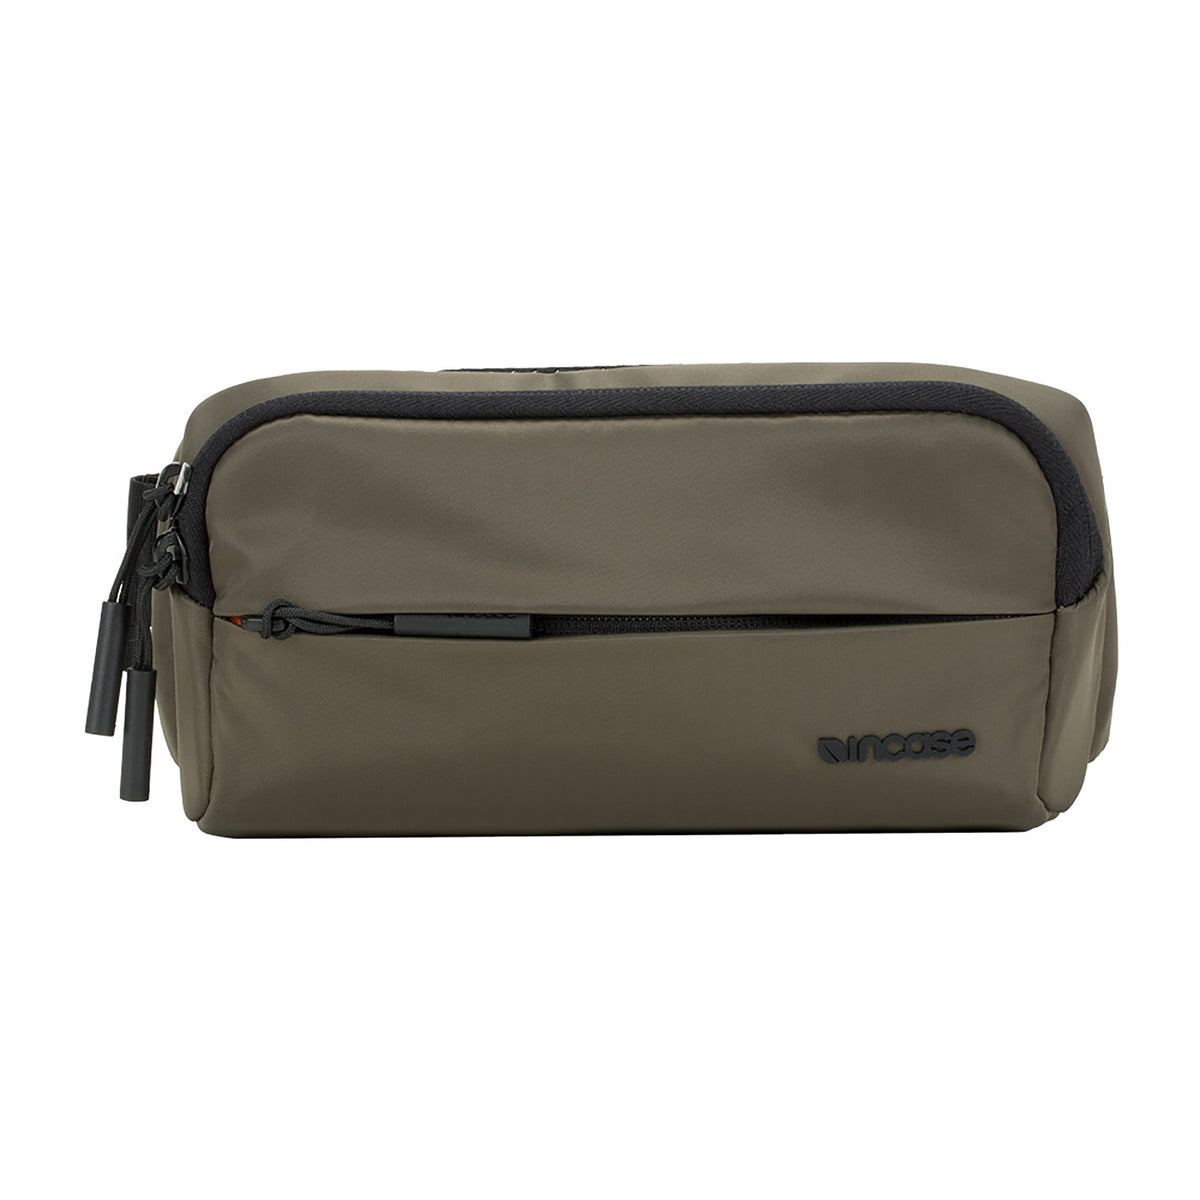 Incase: Side Bag - Olive